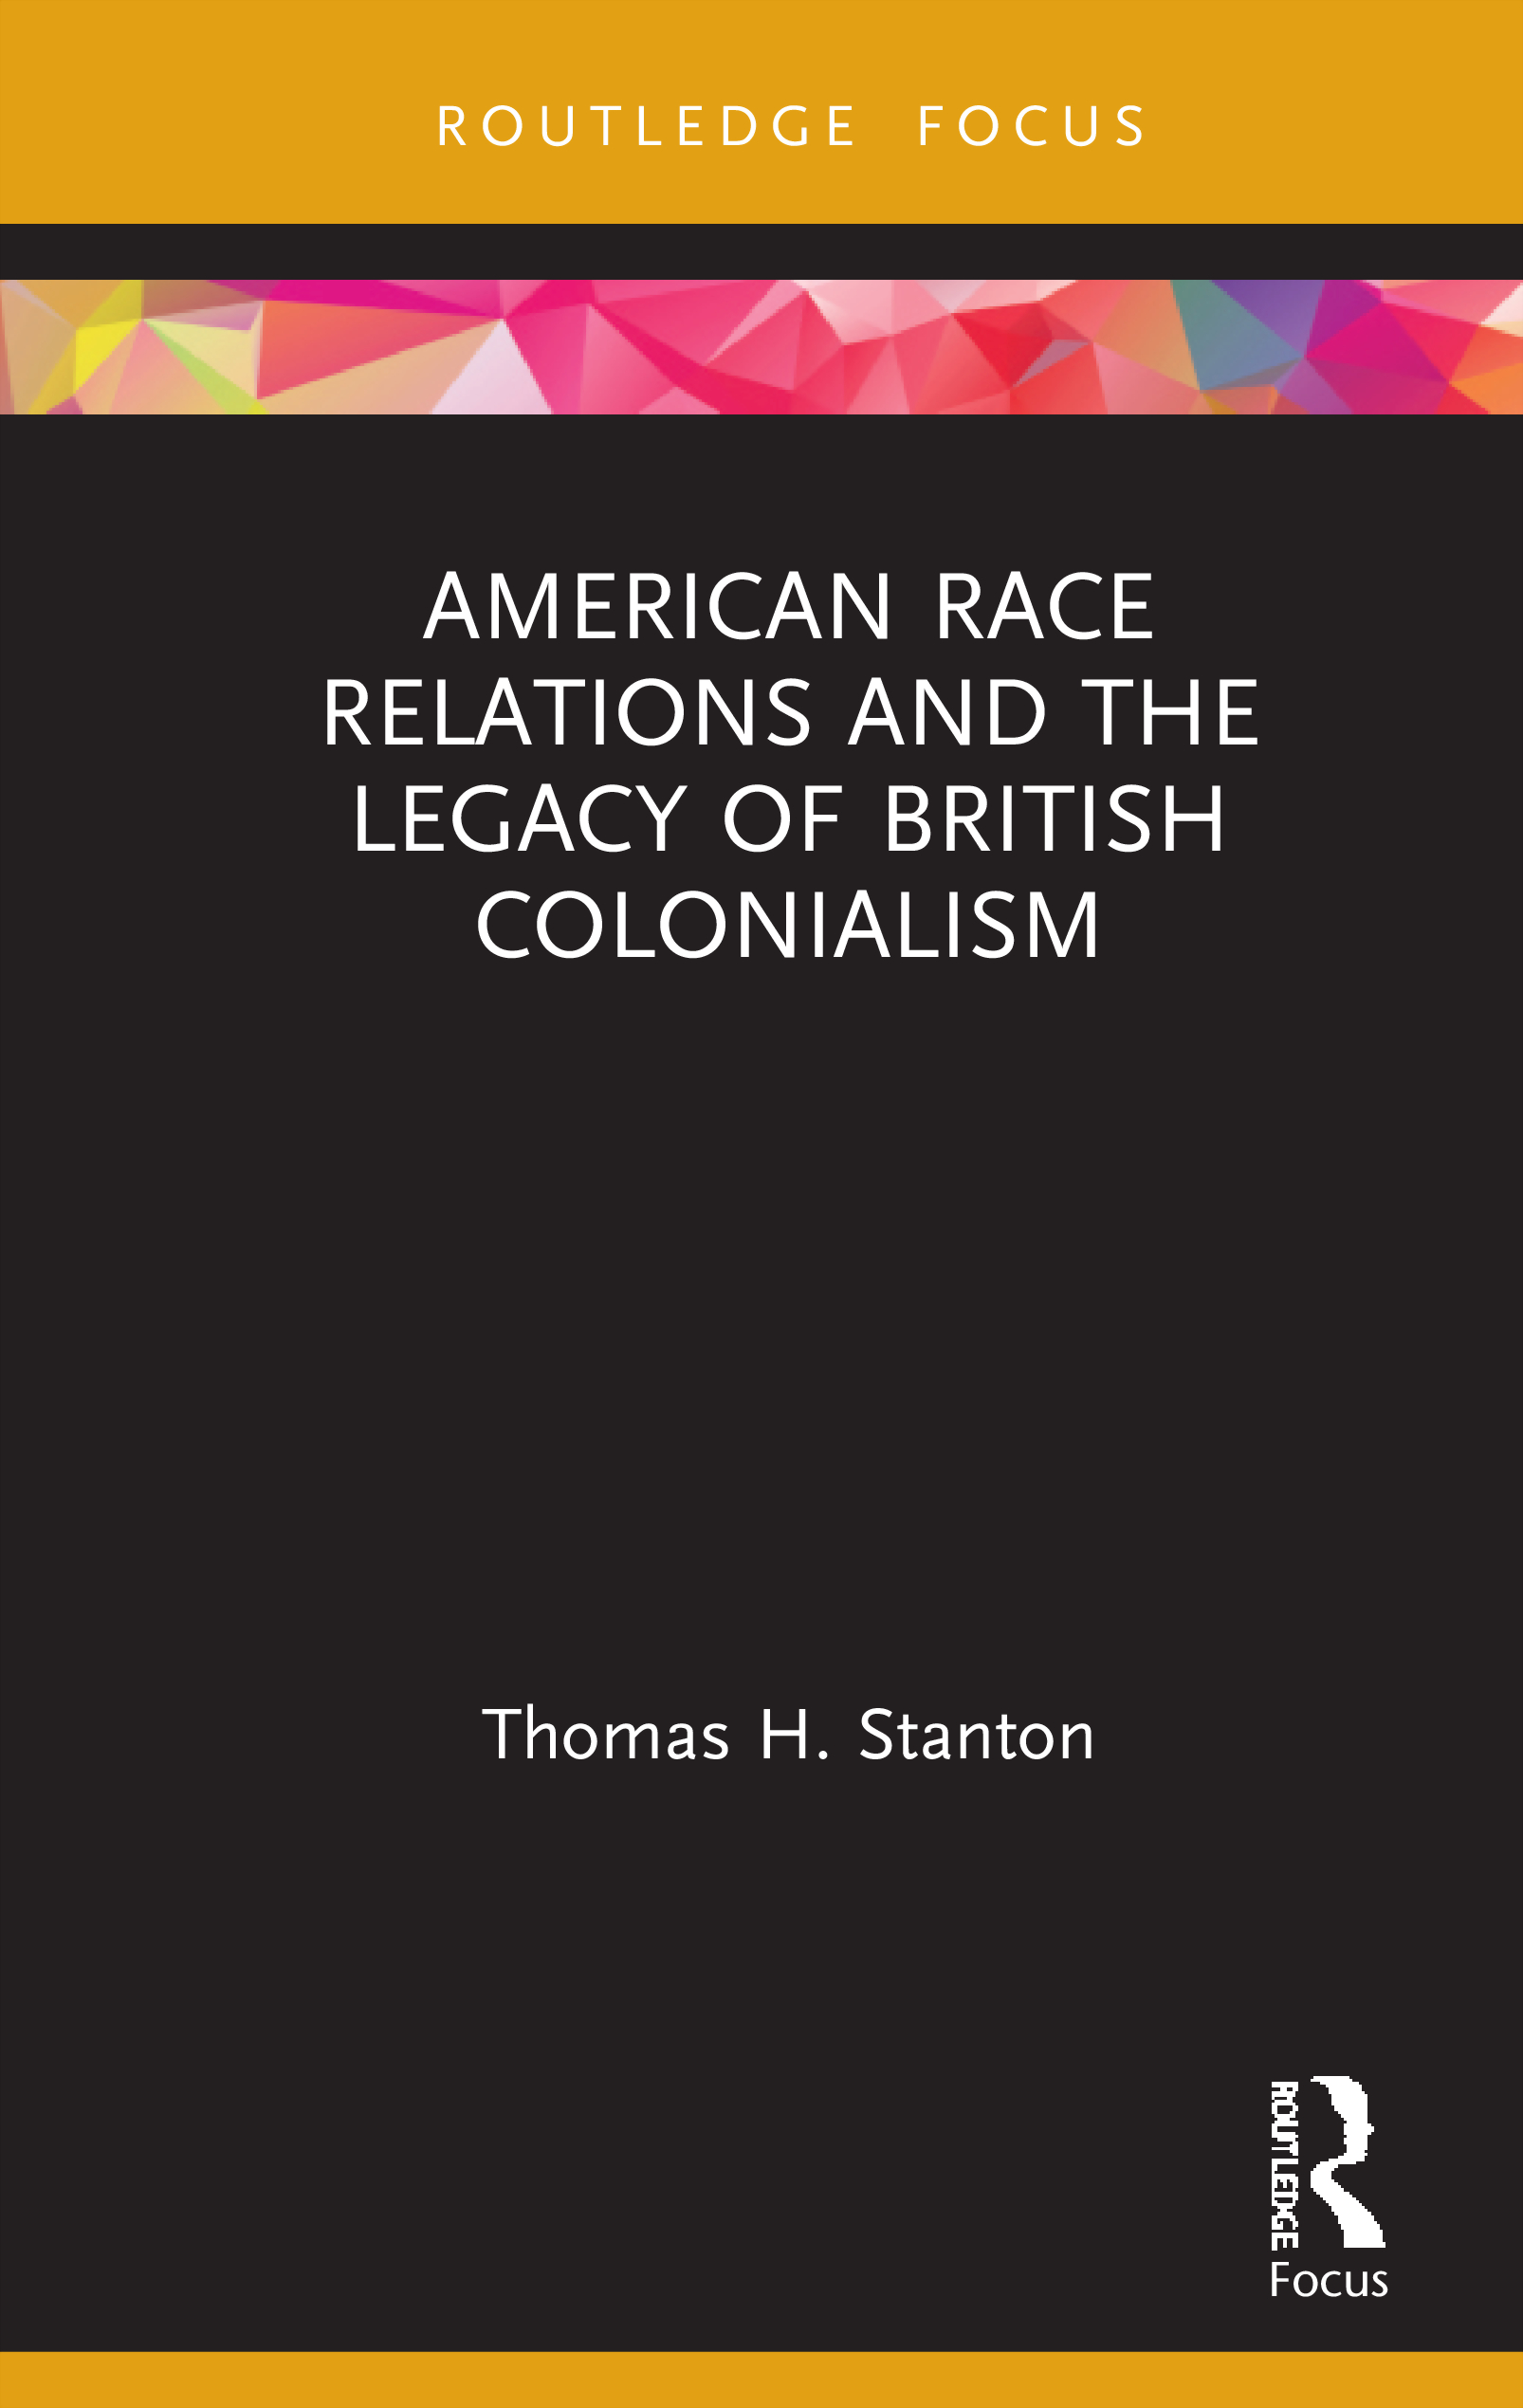 American Race Relations and the Legacy of British Colonialism book cover